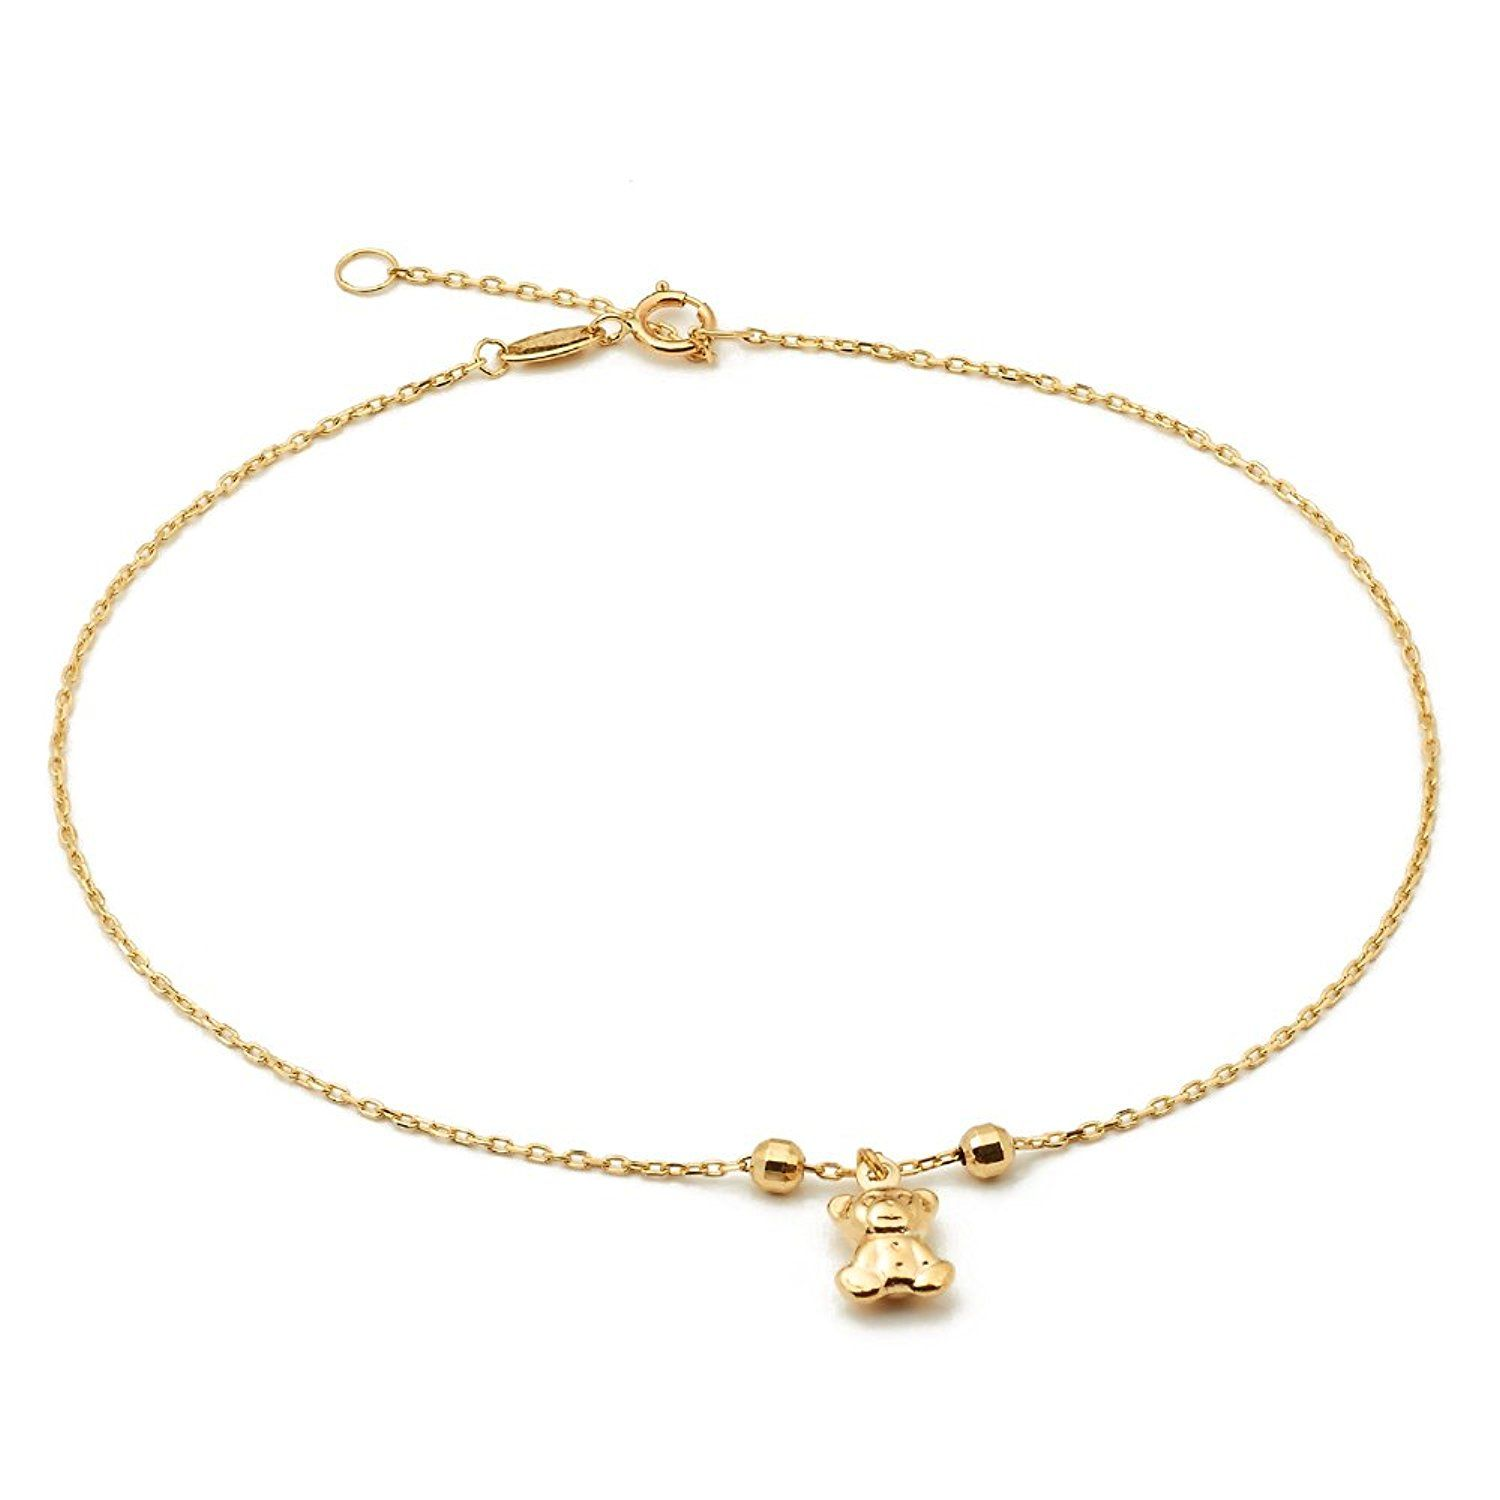 Ankle Anklets For Women Real 10k Yellow Gold Teddy Bear Charm Beach Foot Classy For More Information Visit Women Anklets Silver Anklets Online Gold Anklet